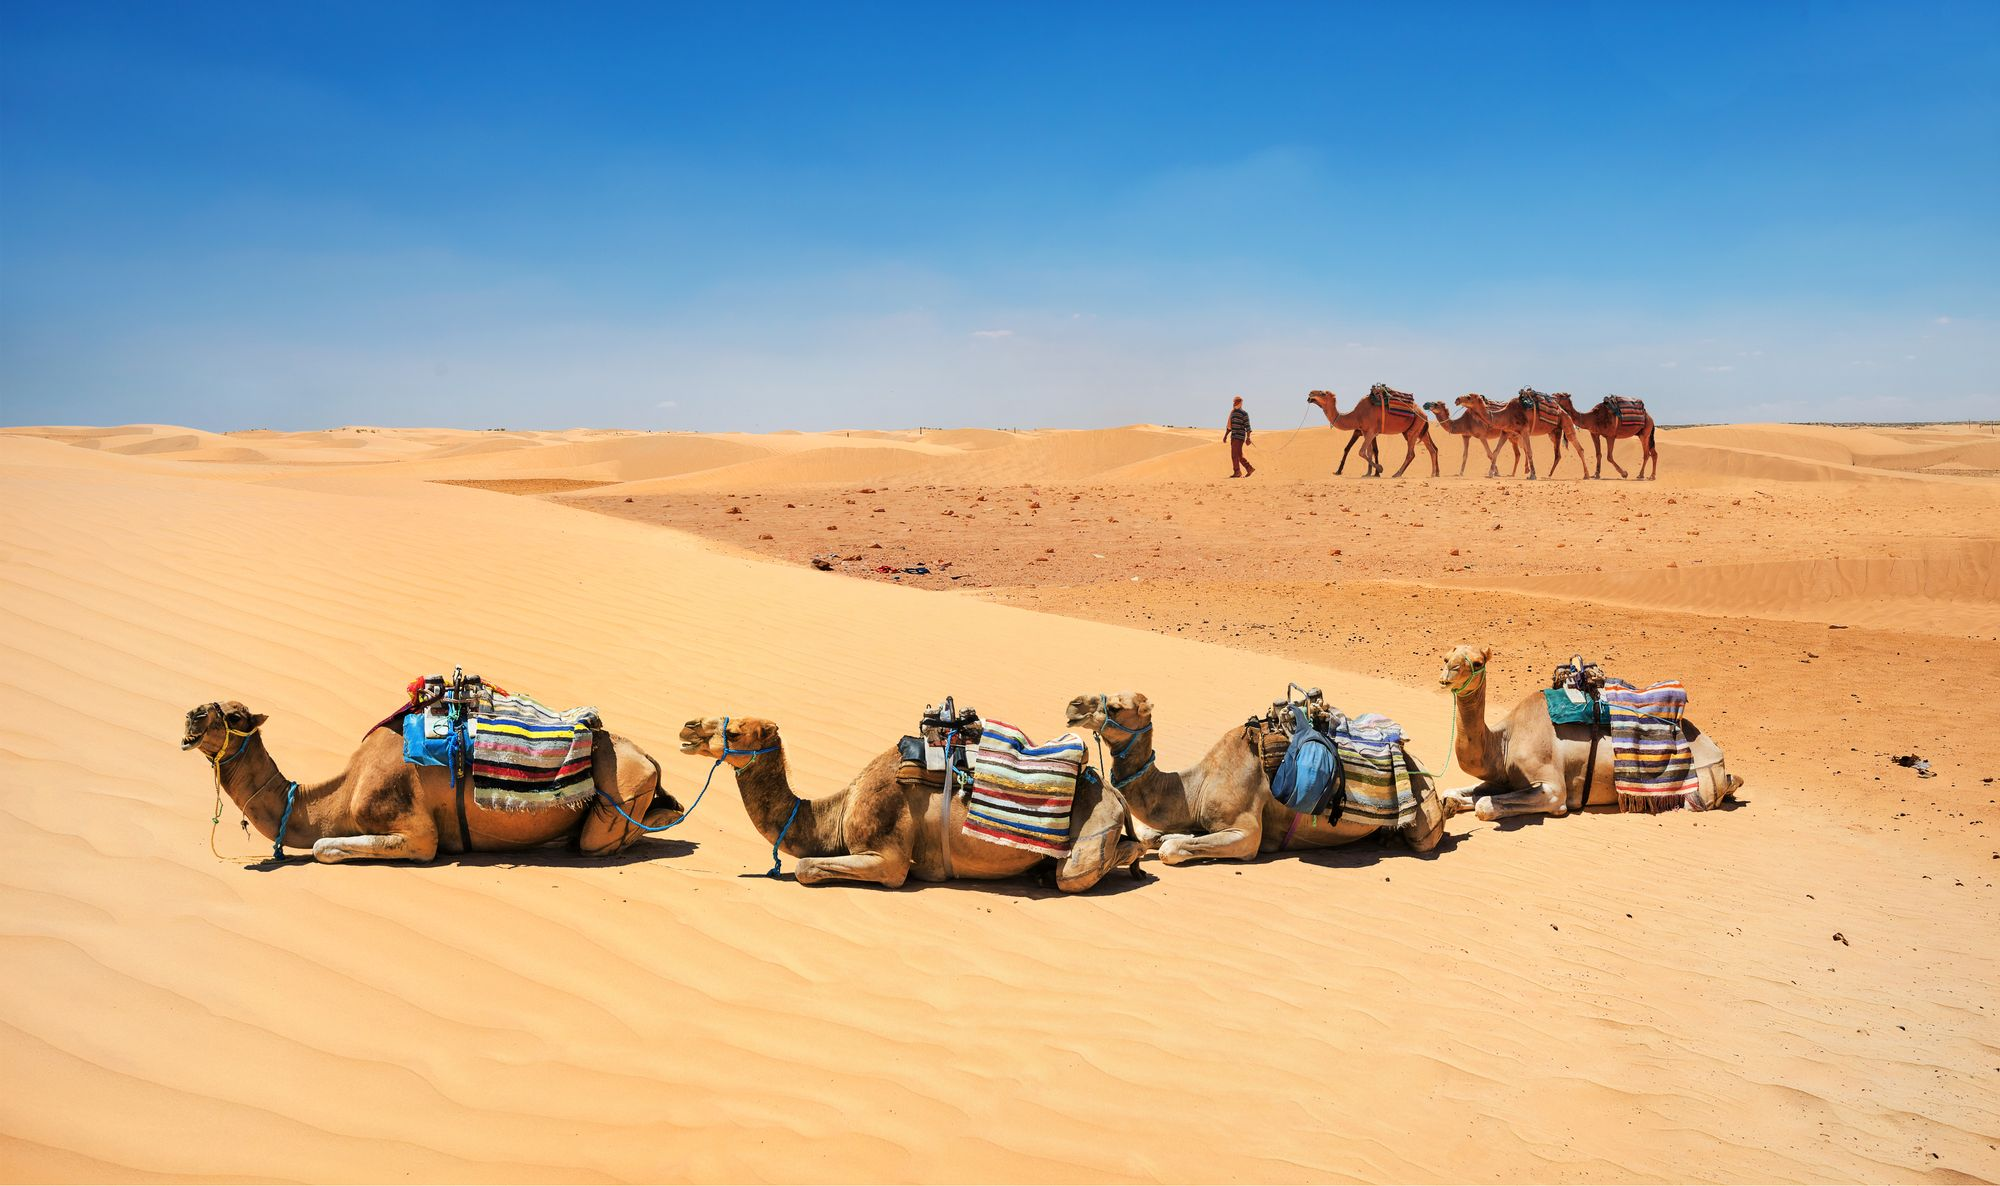 The city of Douz is the last stop before the Sahara